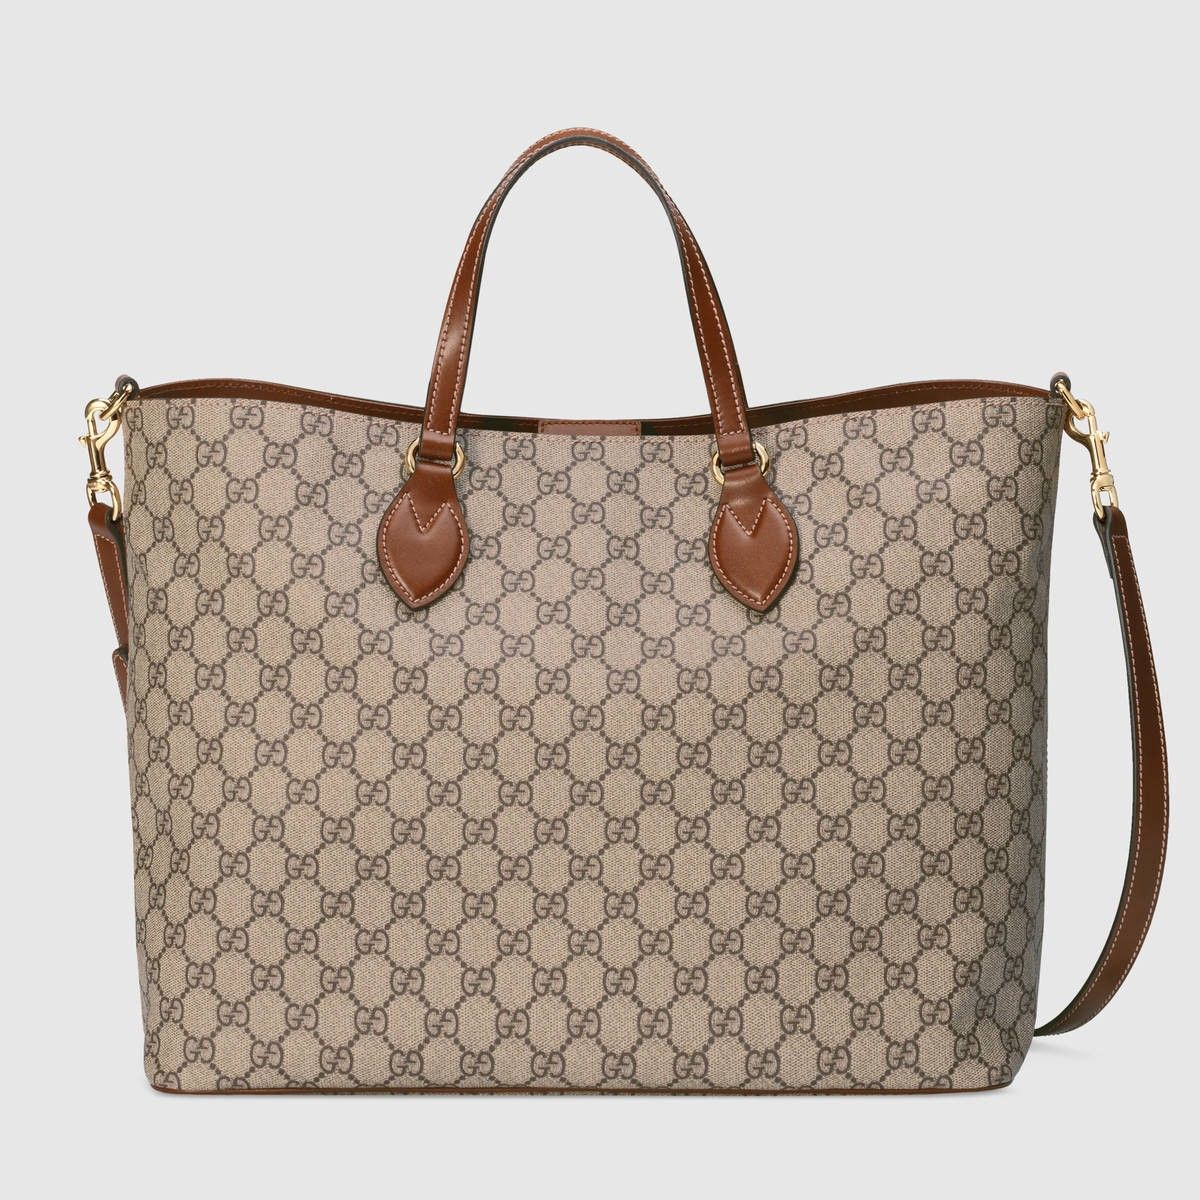 GUCCI Gg Supreme Tote - Soft Gg Supreme.  gucci  bags  canvas  tote  lining   shoulder bags  suede  hand bags   864f4b765951